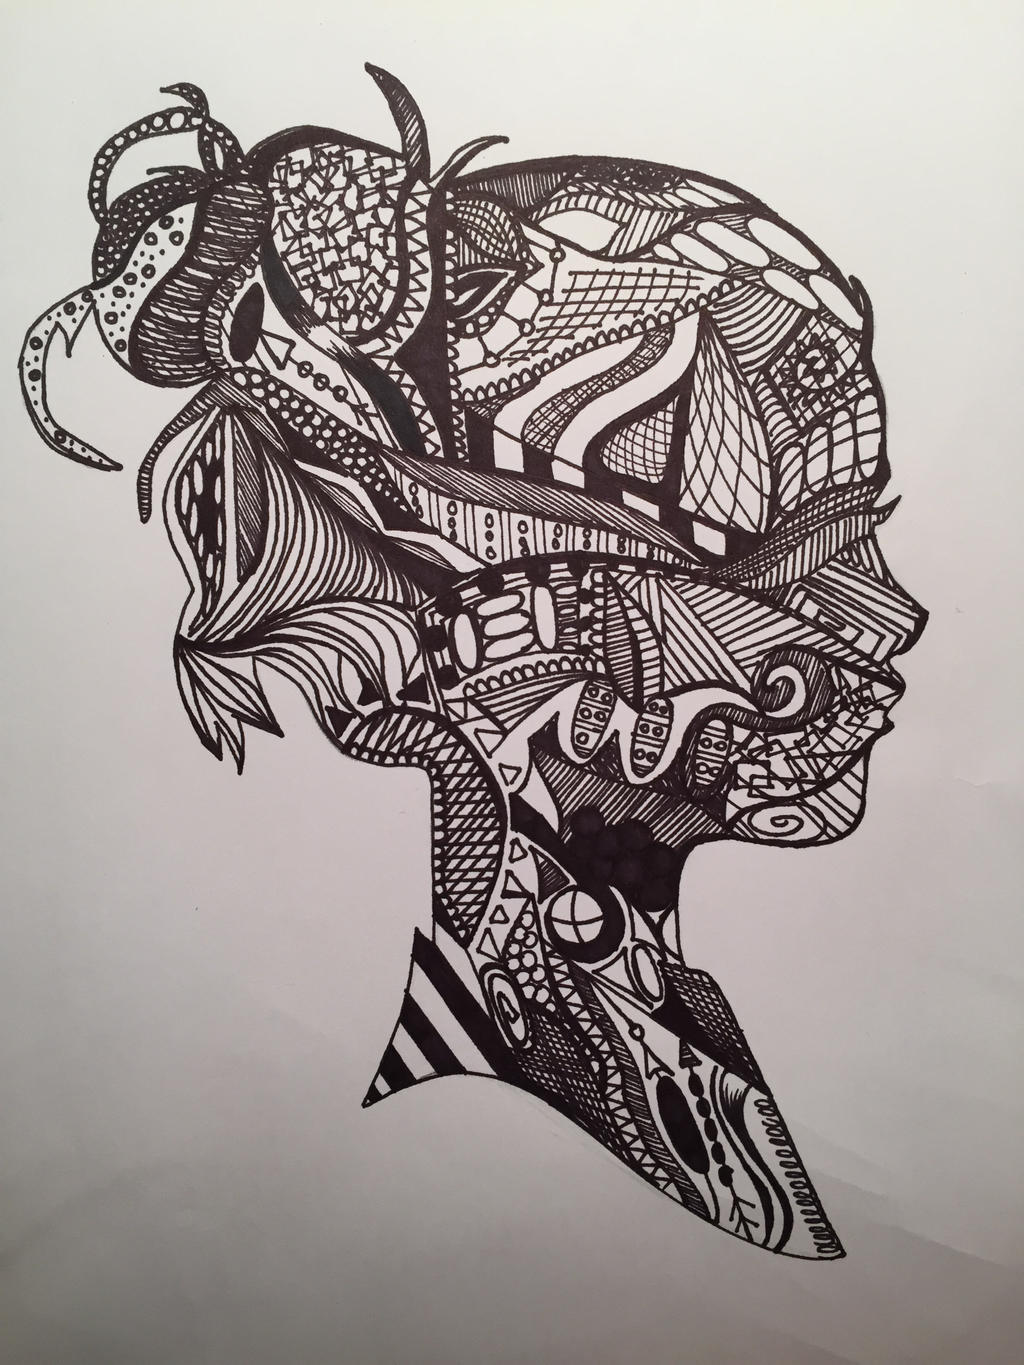 Silhouette Zentangle by Briarsong on DeviantArt